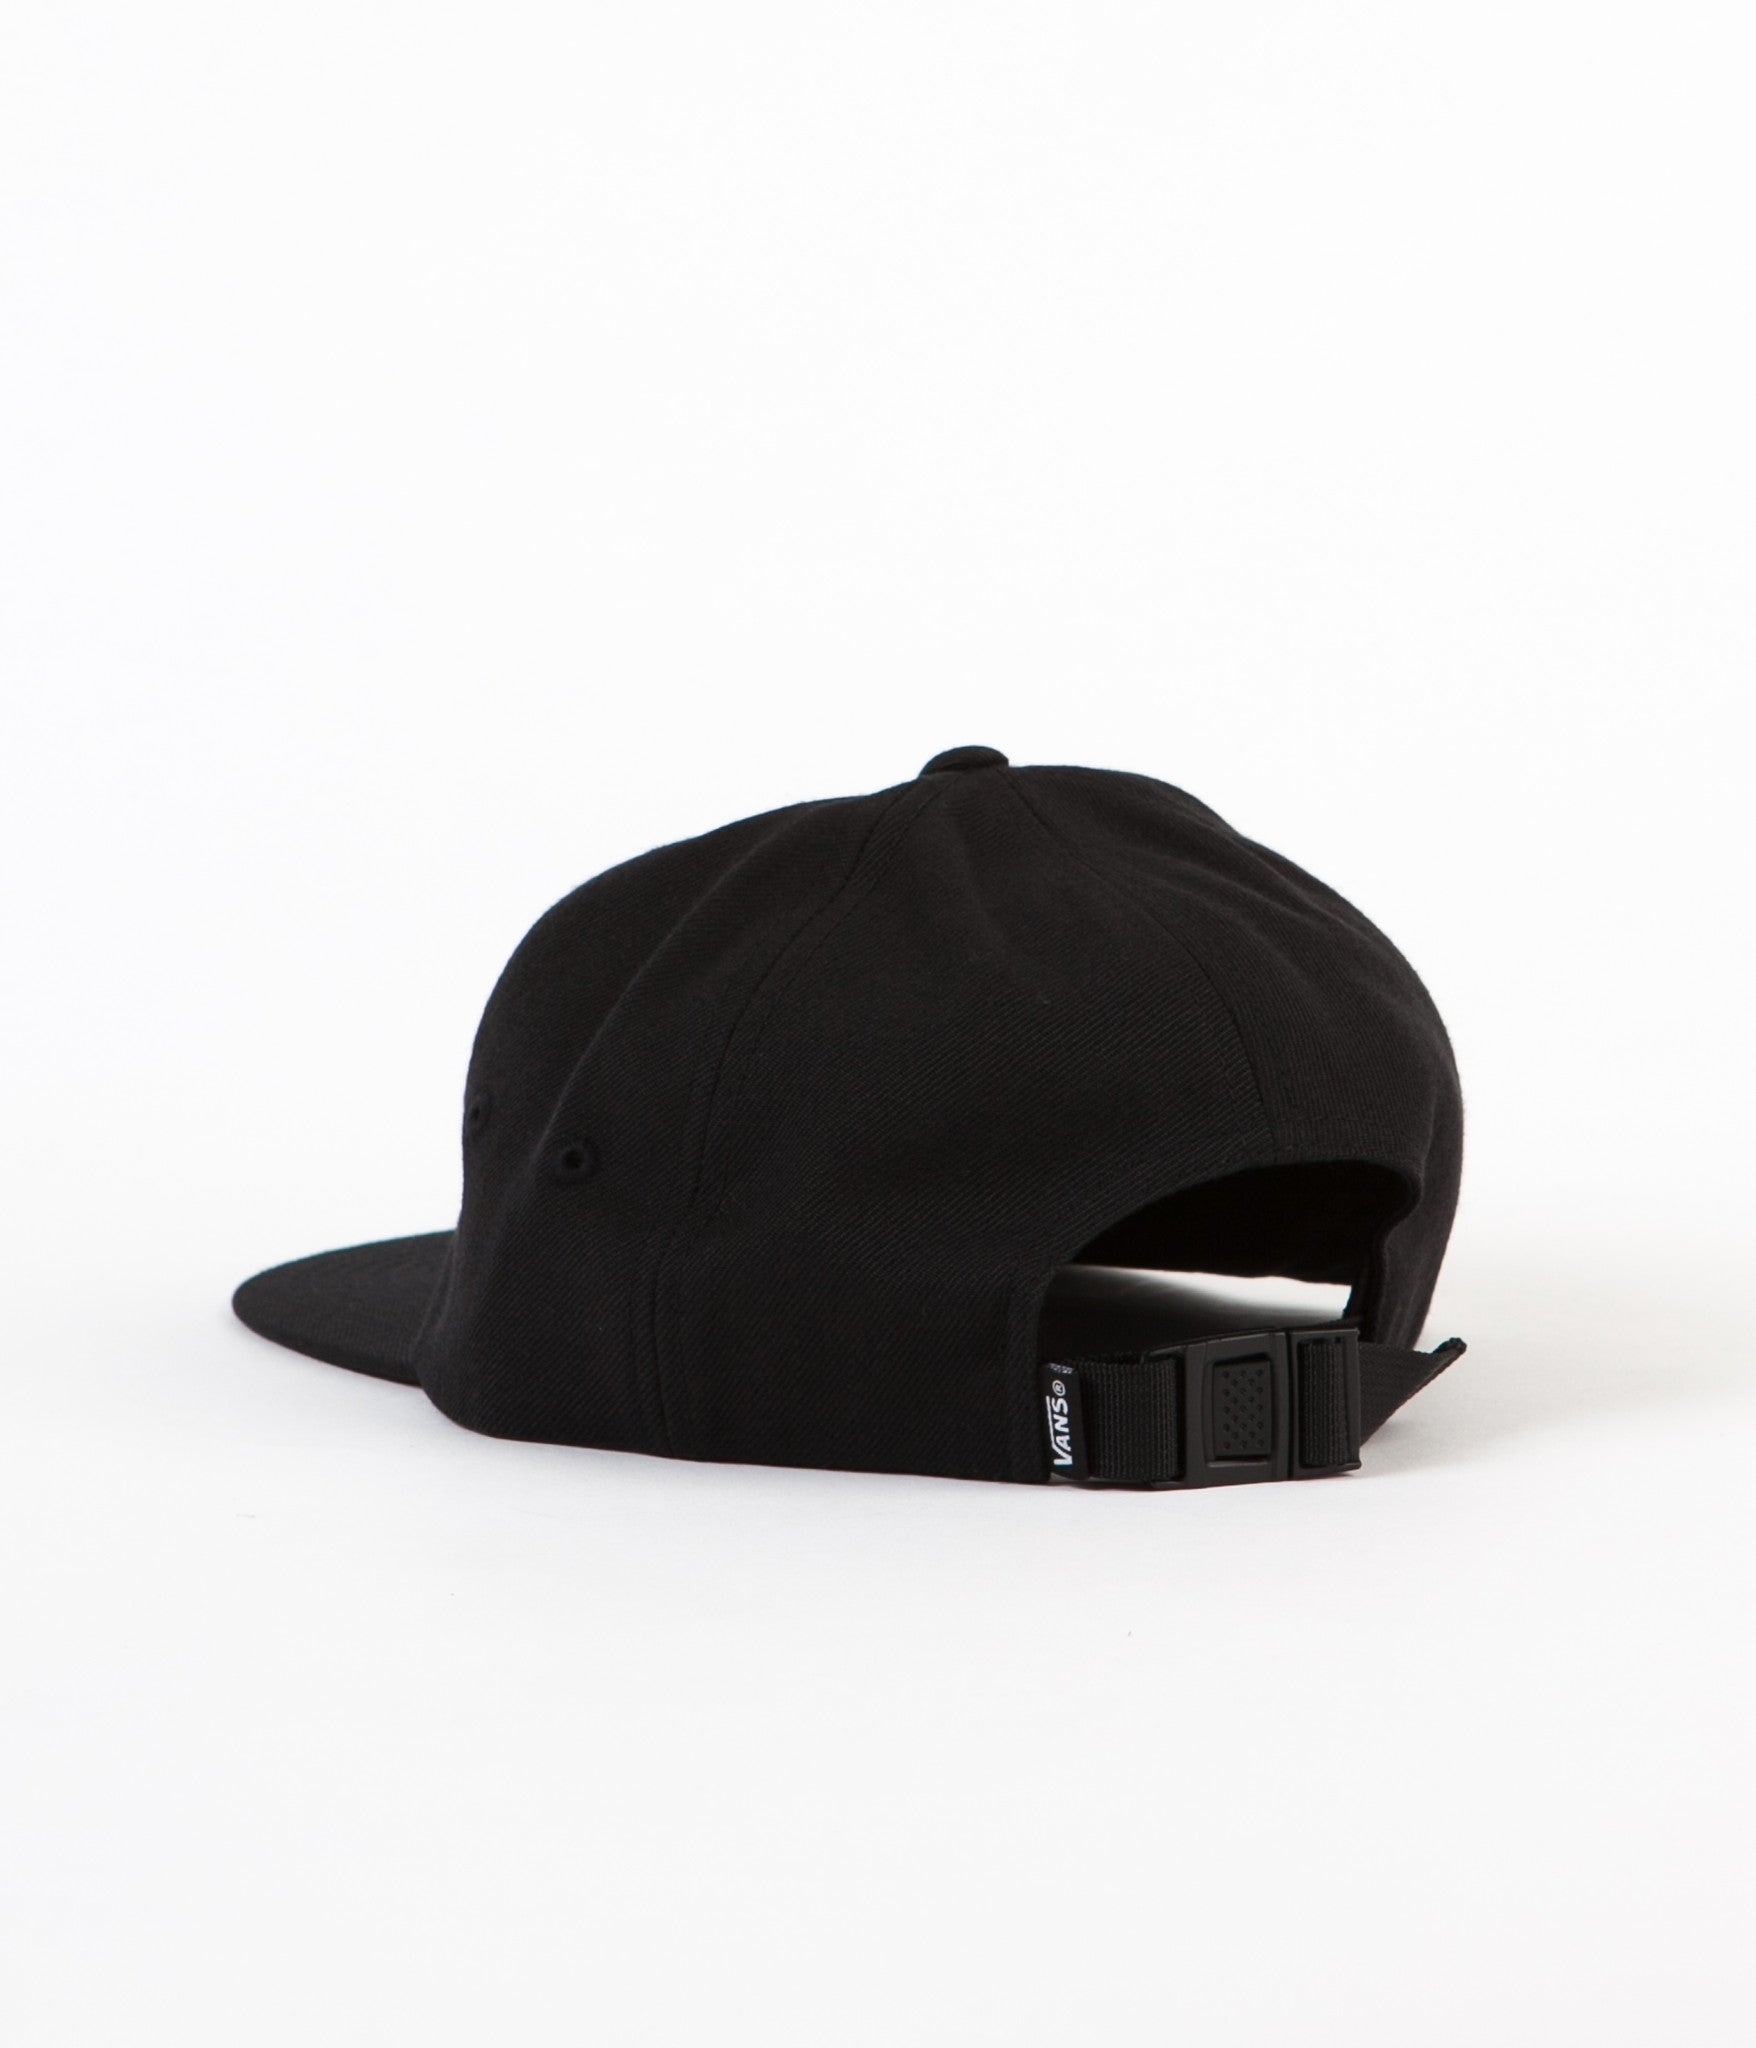 Vans Gilbert Crockett Jockey Cap - Black